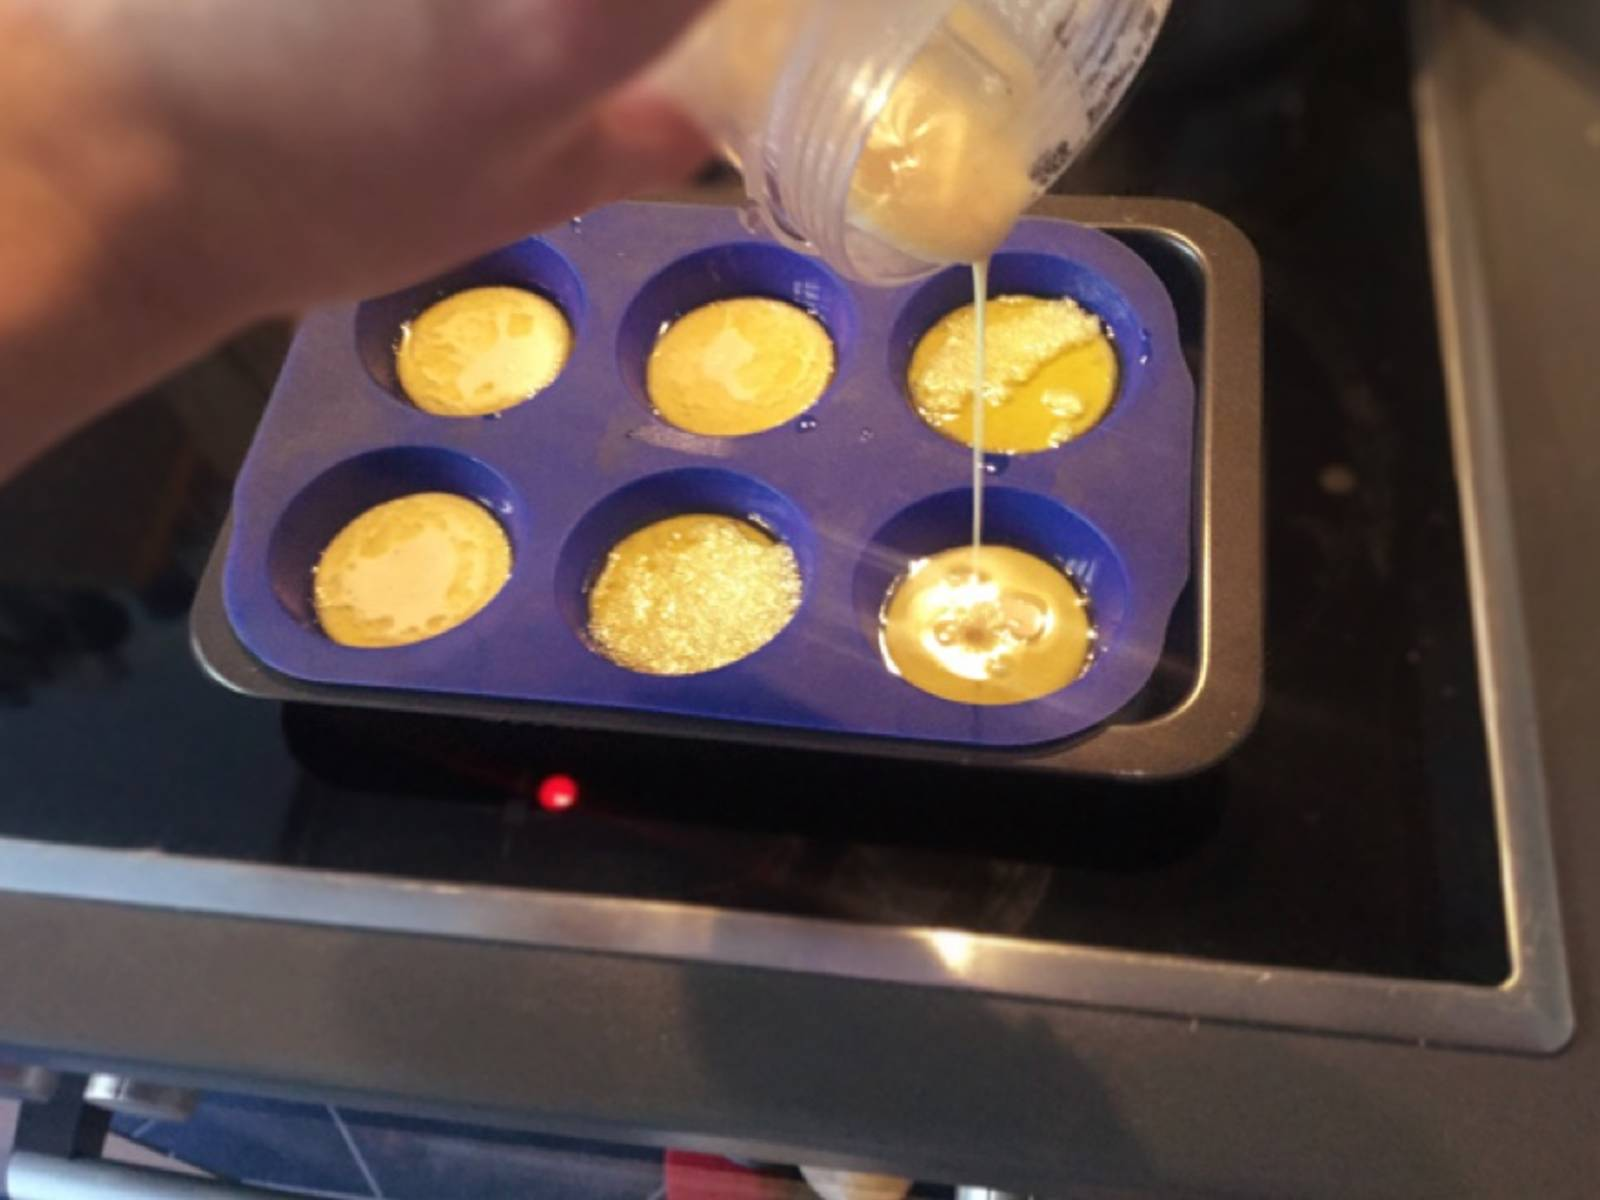 Quickly pour batter into the muffin tin. Each cup should be half full. Quickly return muffin tin to the oven.